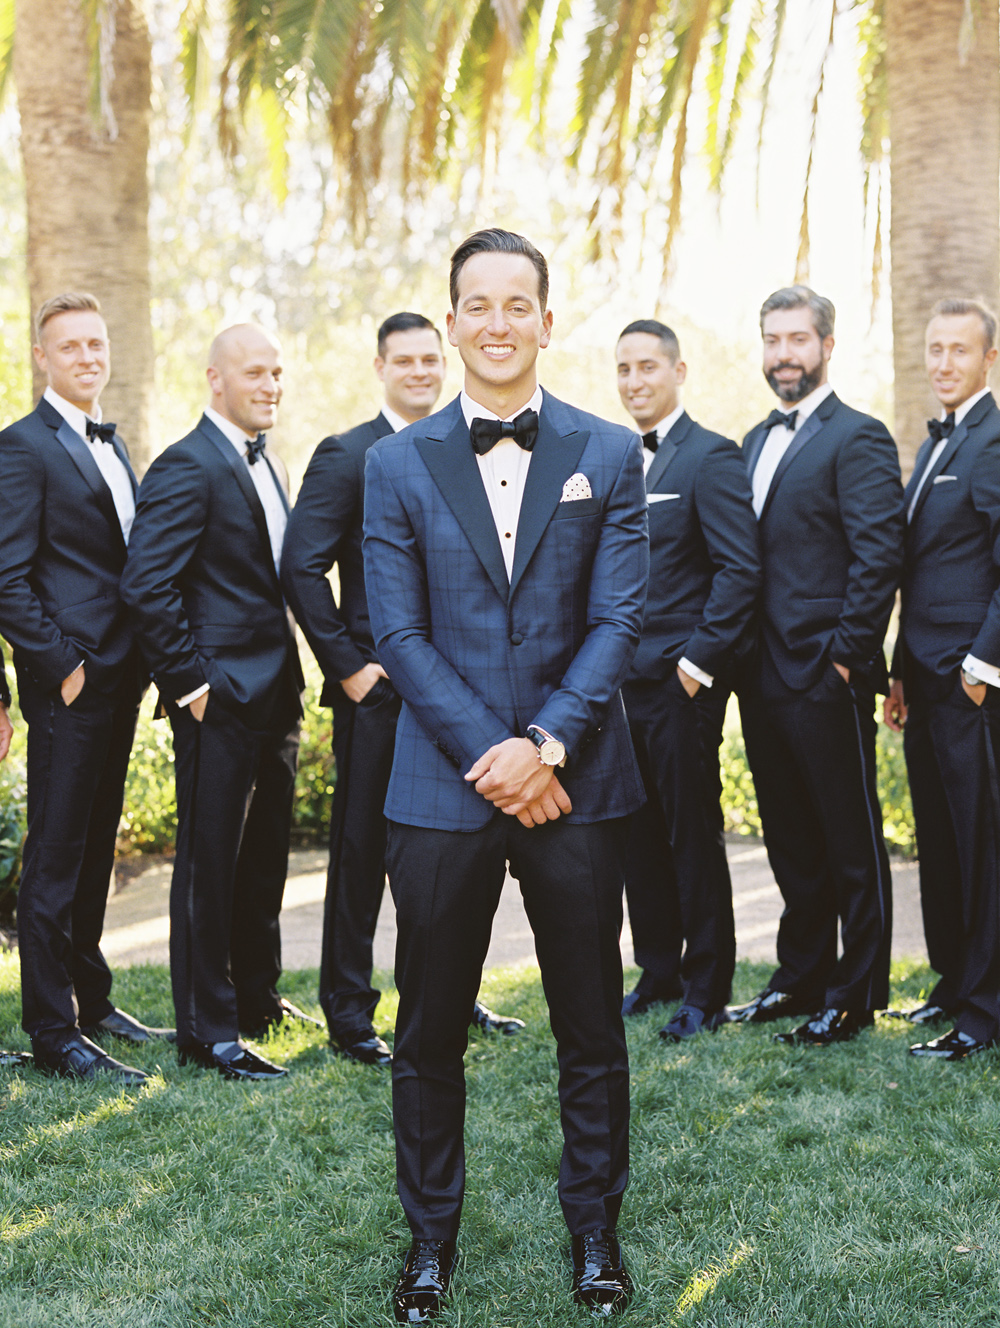 custom suit tips for grooms, should grooms get custom suits for the wedding